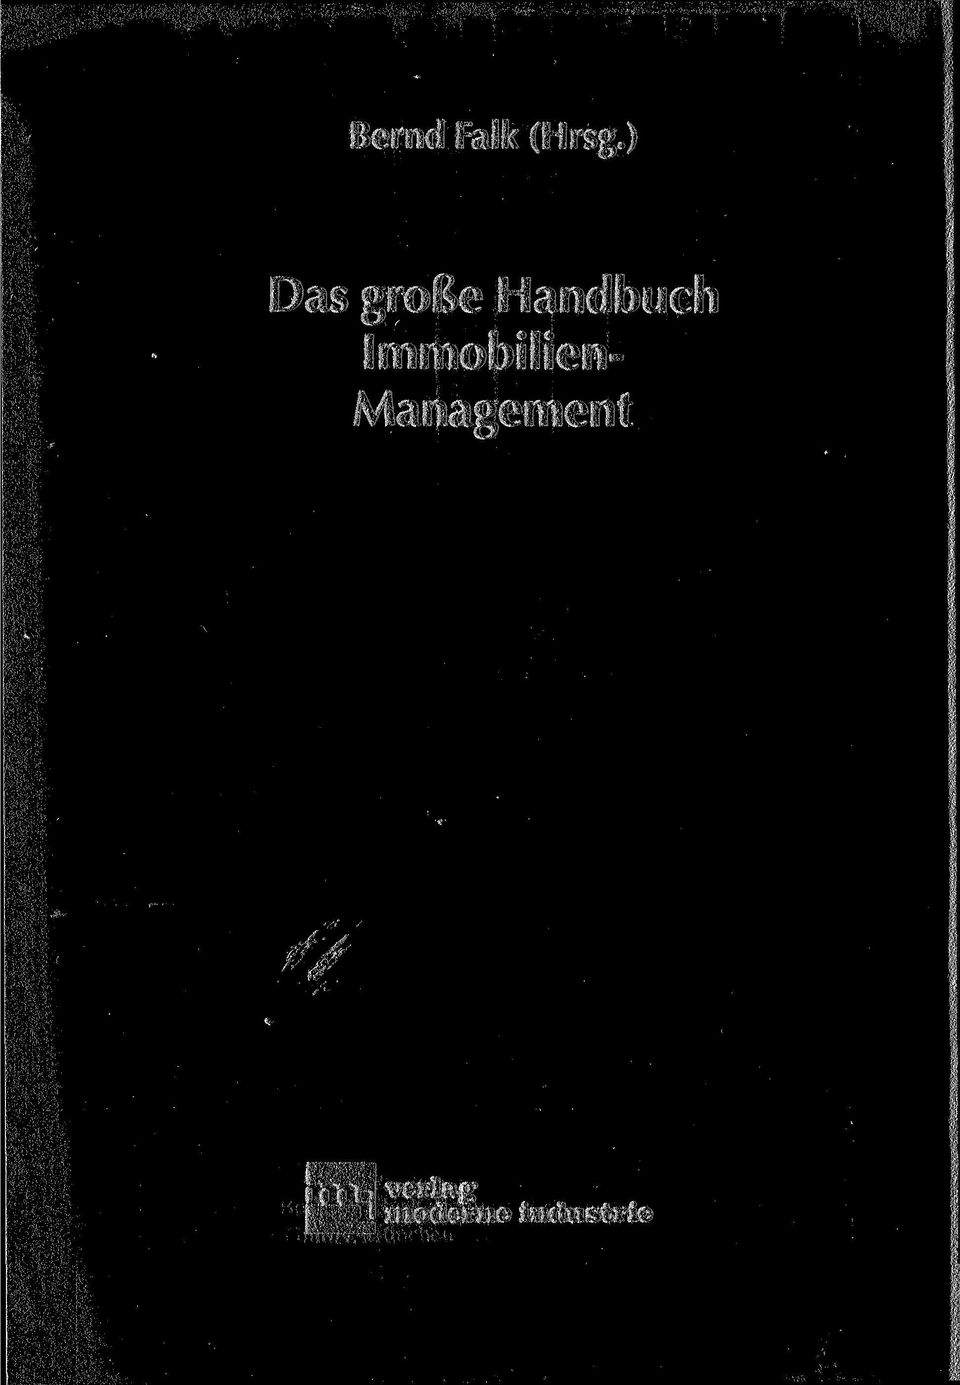 Immobilien- Management